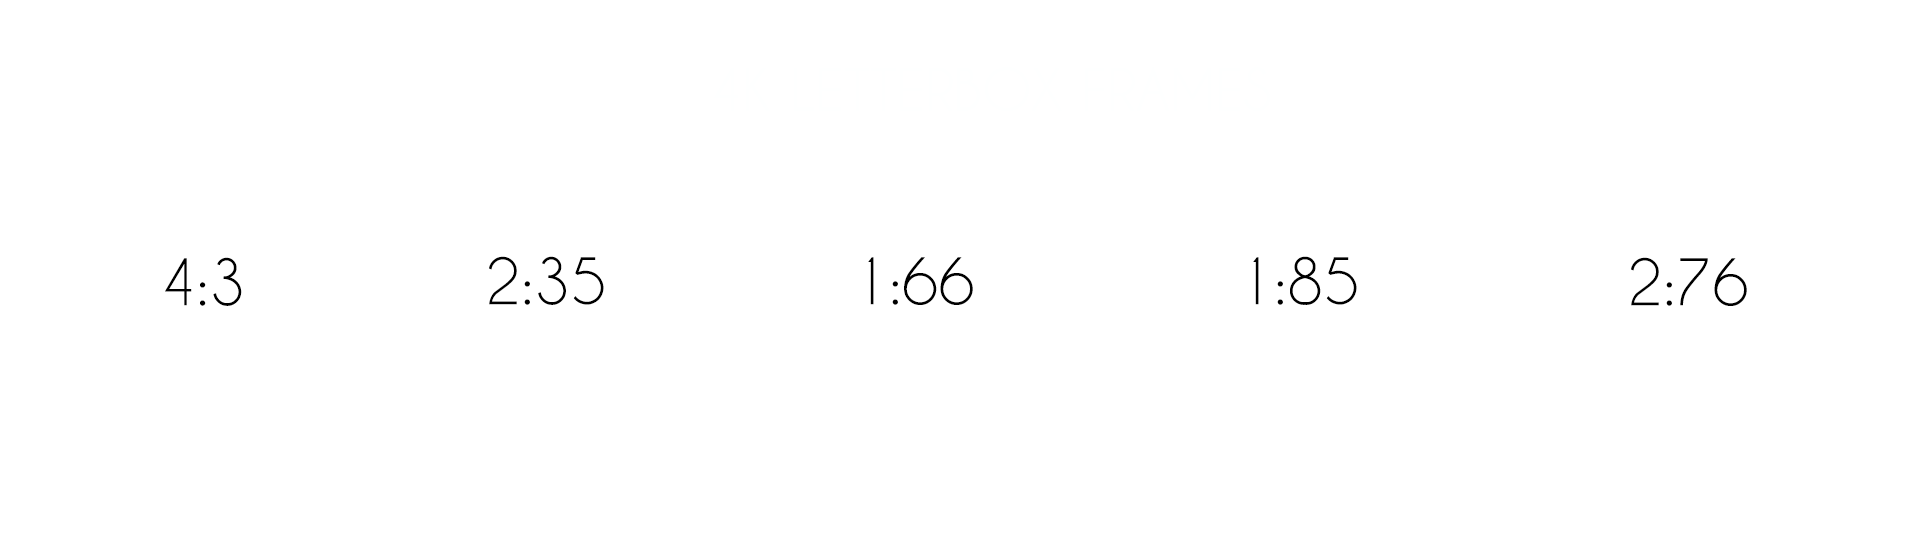 4k letterbox png. Letter box alum northeastfitness